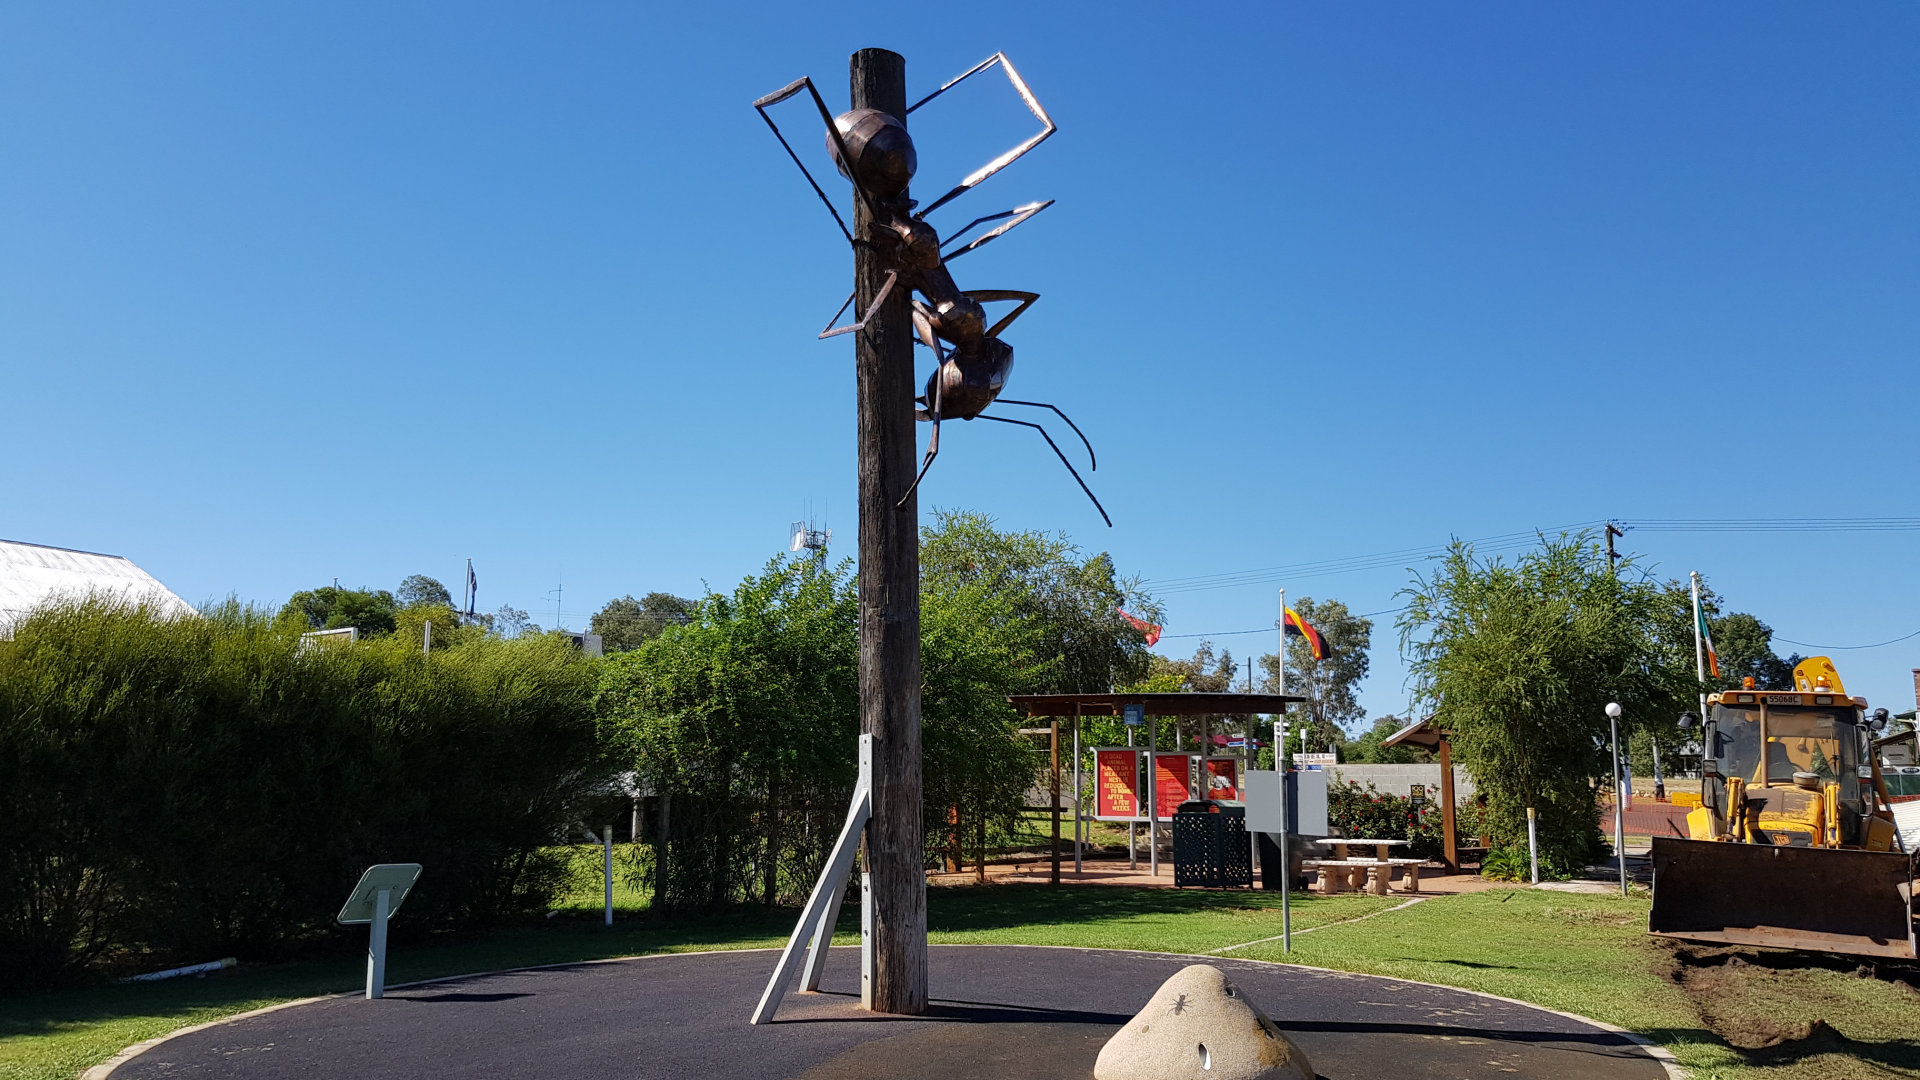 Augathella Meat Ant sculpture, at 300:1 scale. The park has landscaped gardens, picnic tables, BBQ and a playground, making it a great spot for a stop along the Landsborough Hwy.